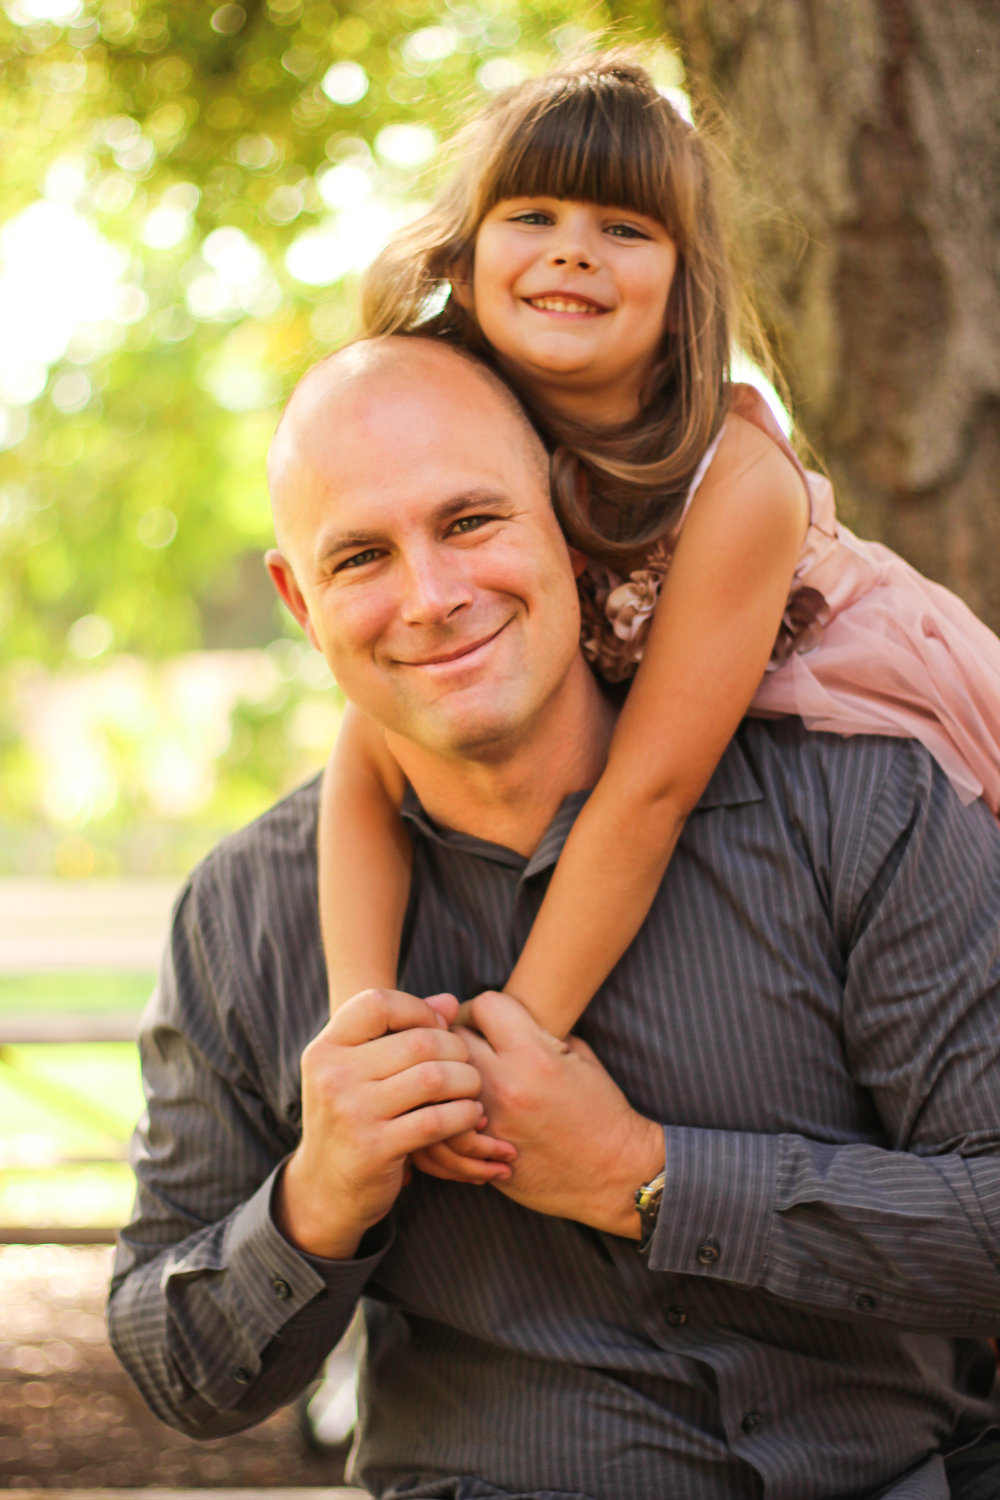 alexandra-rice-photography-quail-hollow-ranch-couple-father-daughter-portrait-photoshoot.jpg